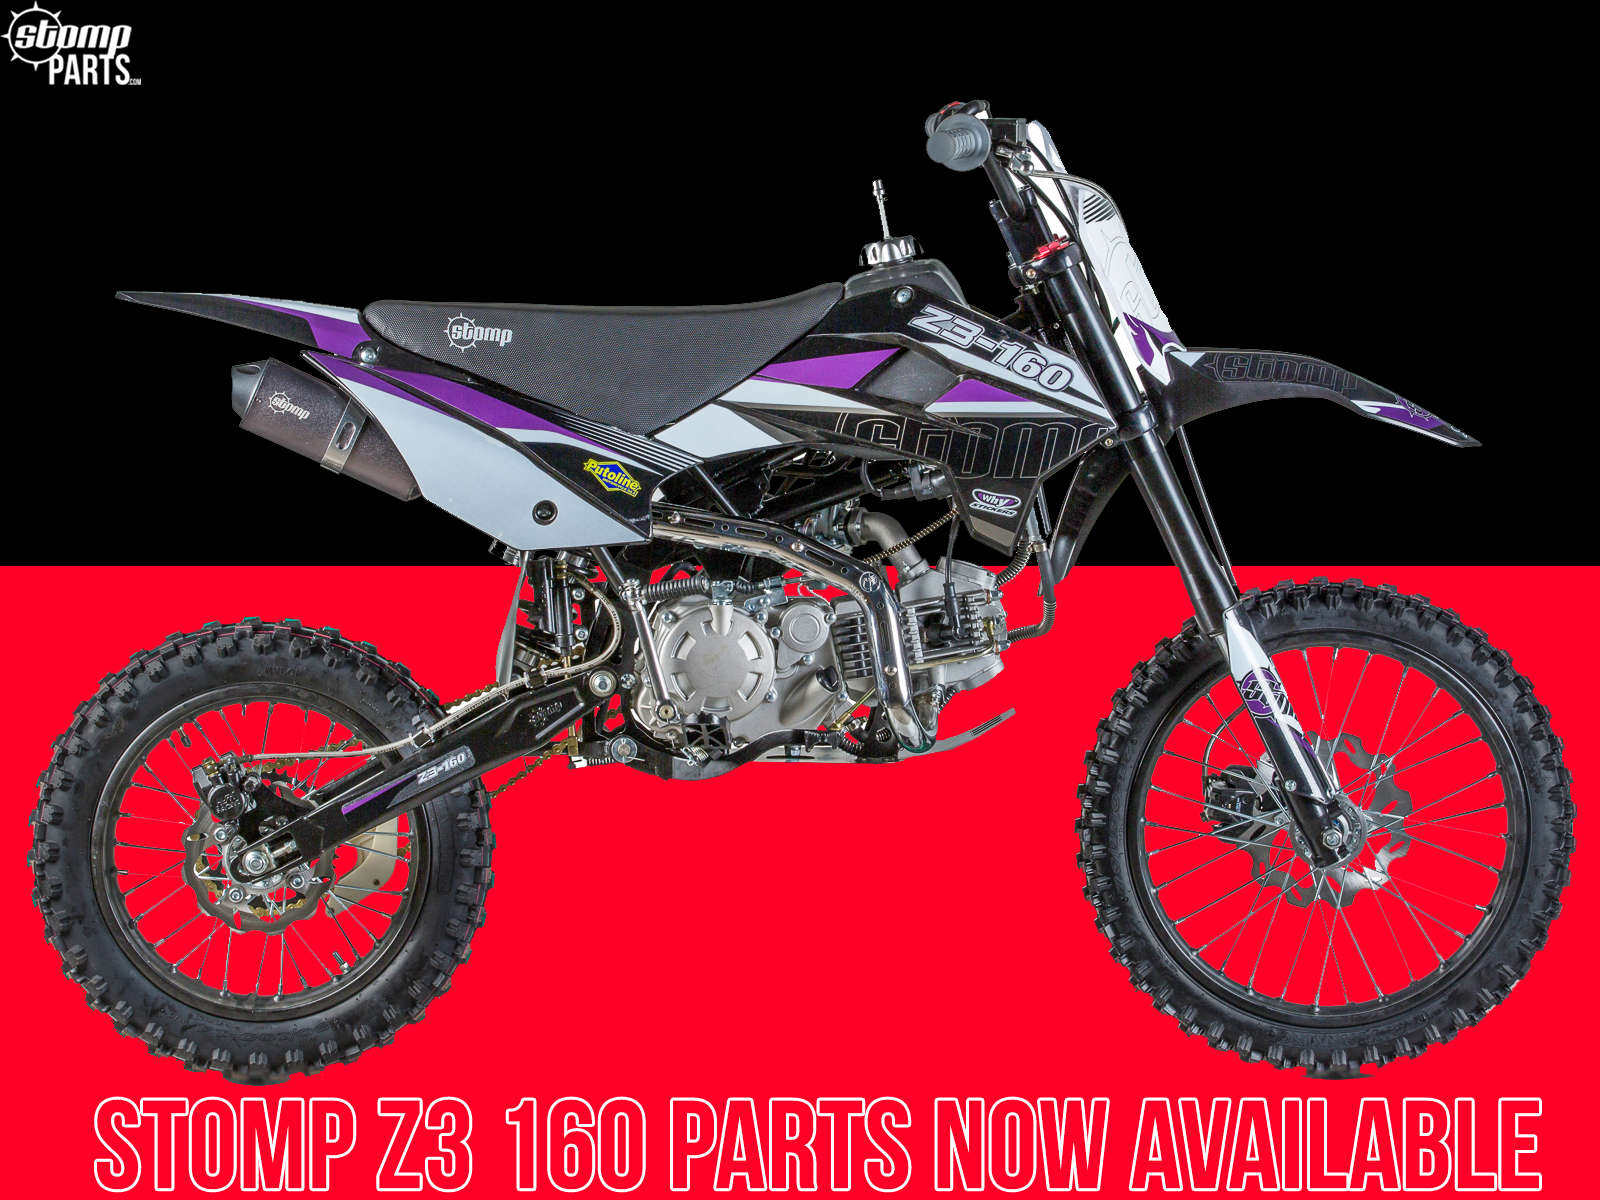 Pit Bike Parts Spares To Fit Stomp Demon X Thumpstar More Crf50 Wiring Diagram Engine